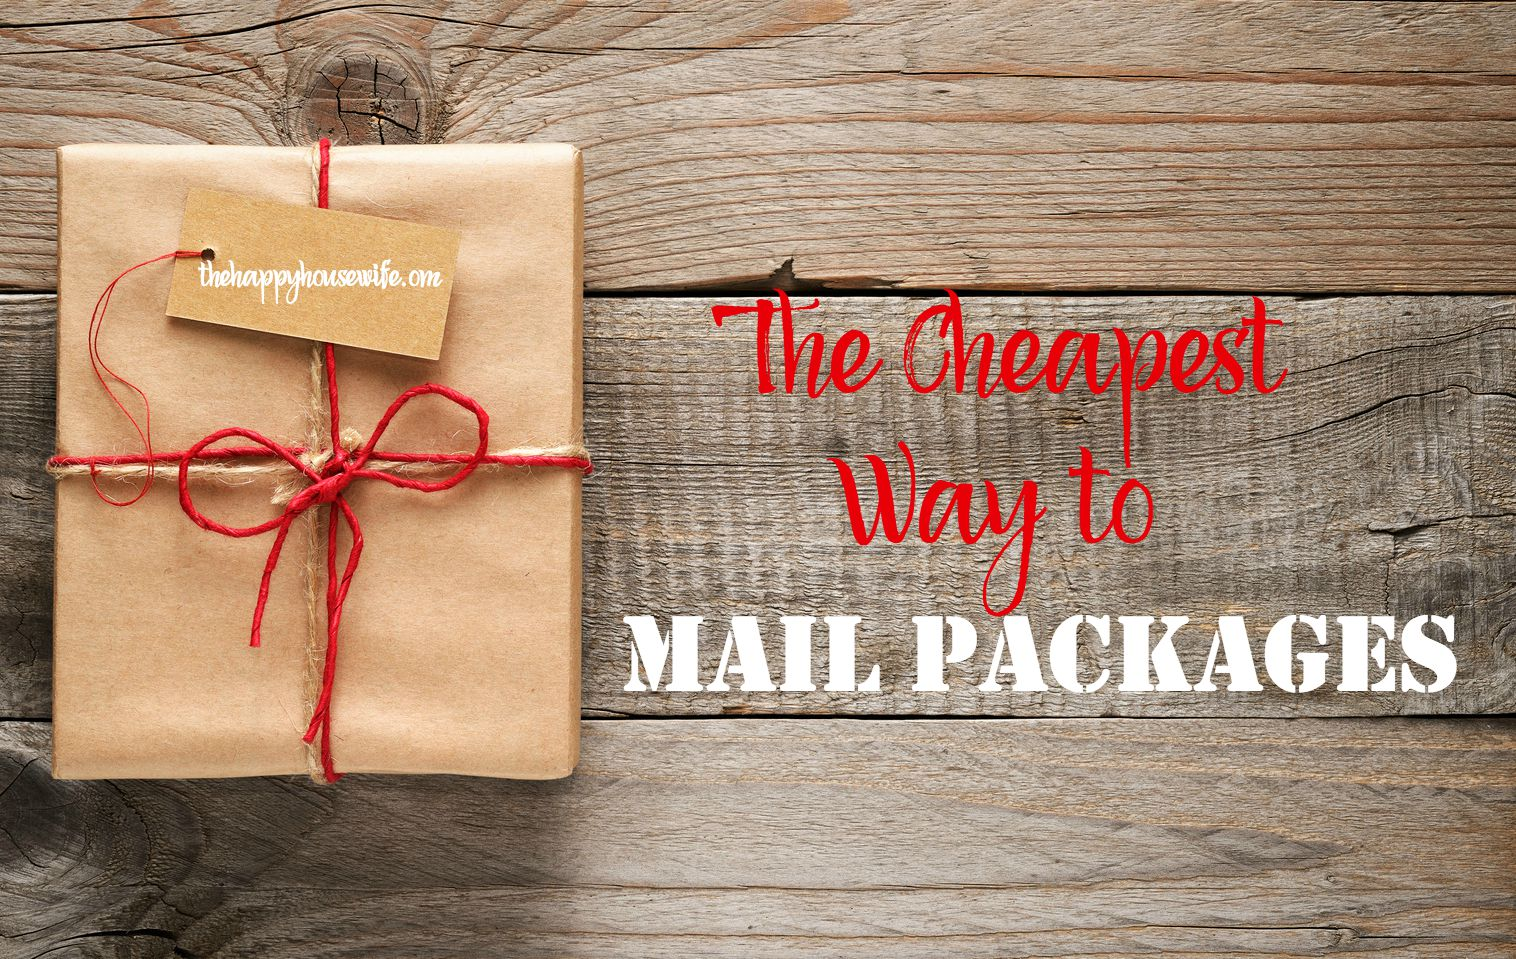 Cheapest Way To Mail Packages  The Happy Housewife